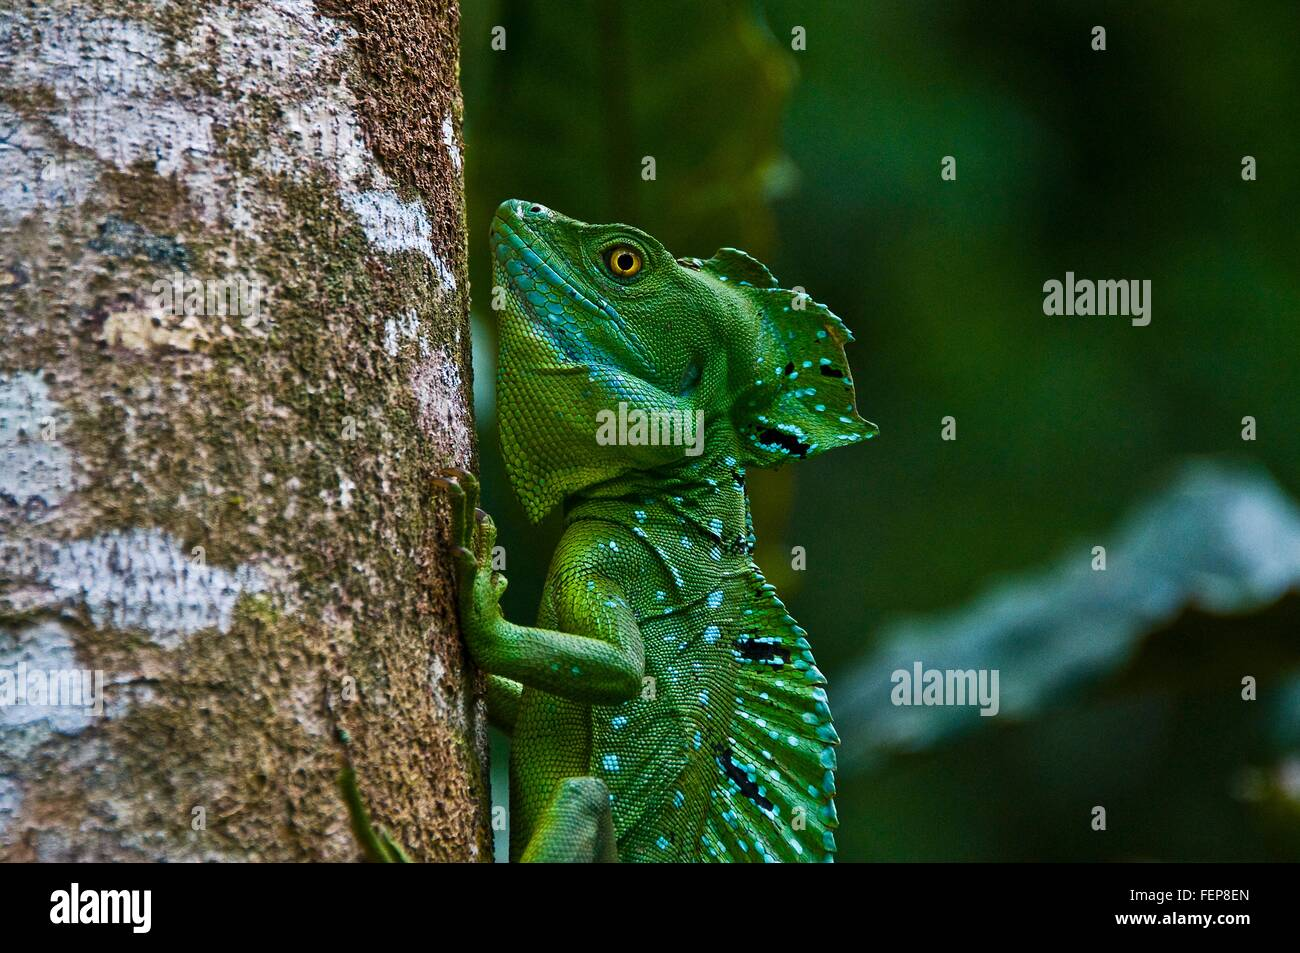 Side view of plumed or double crested basilisk (Basiliscus plumifrons) gripping tree trunk, Costa Rica Stock Photo